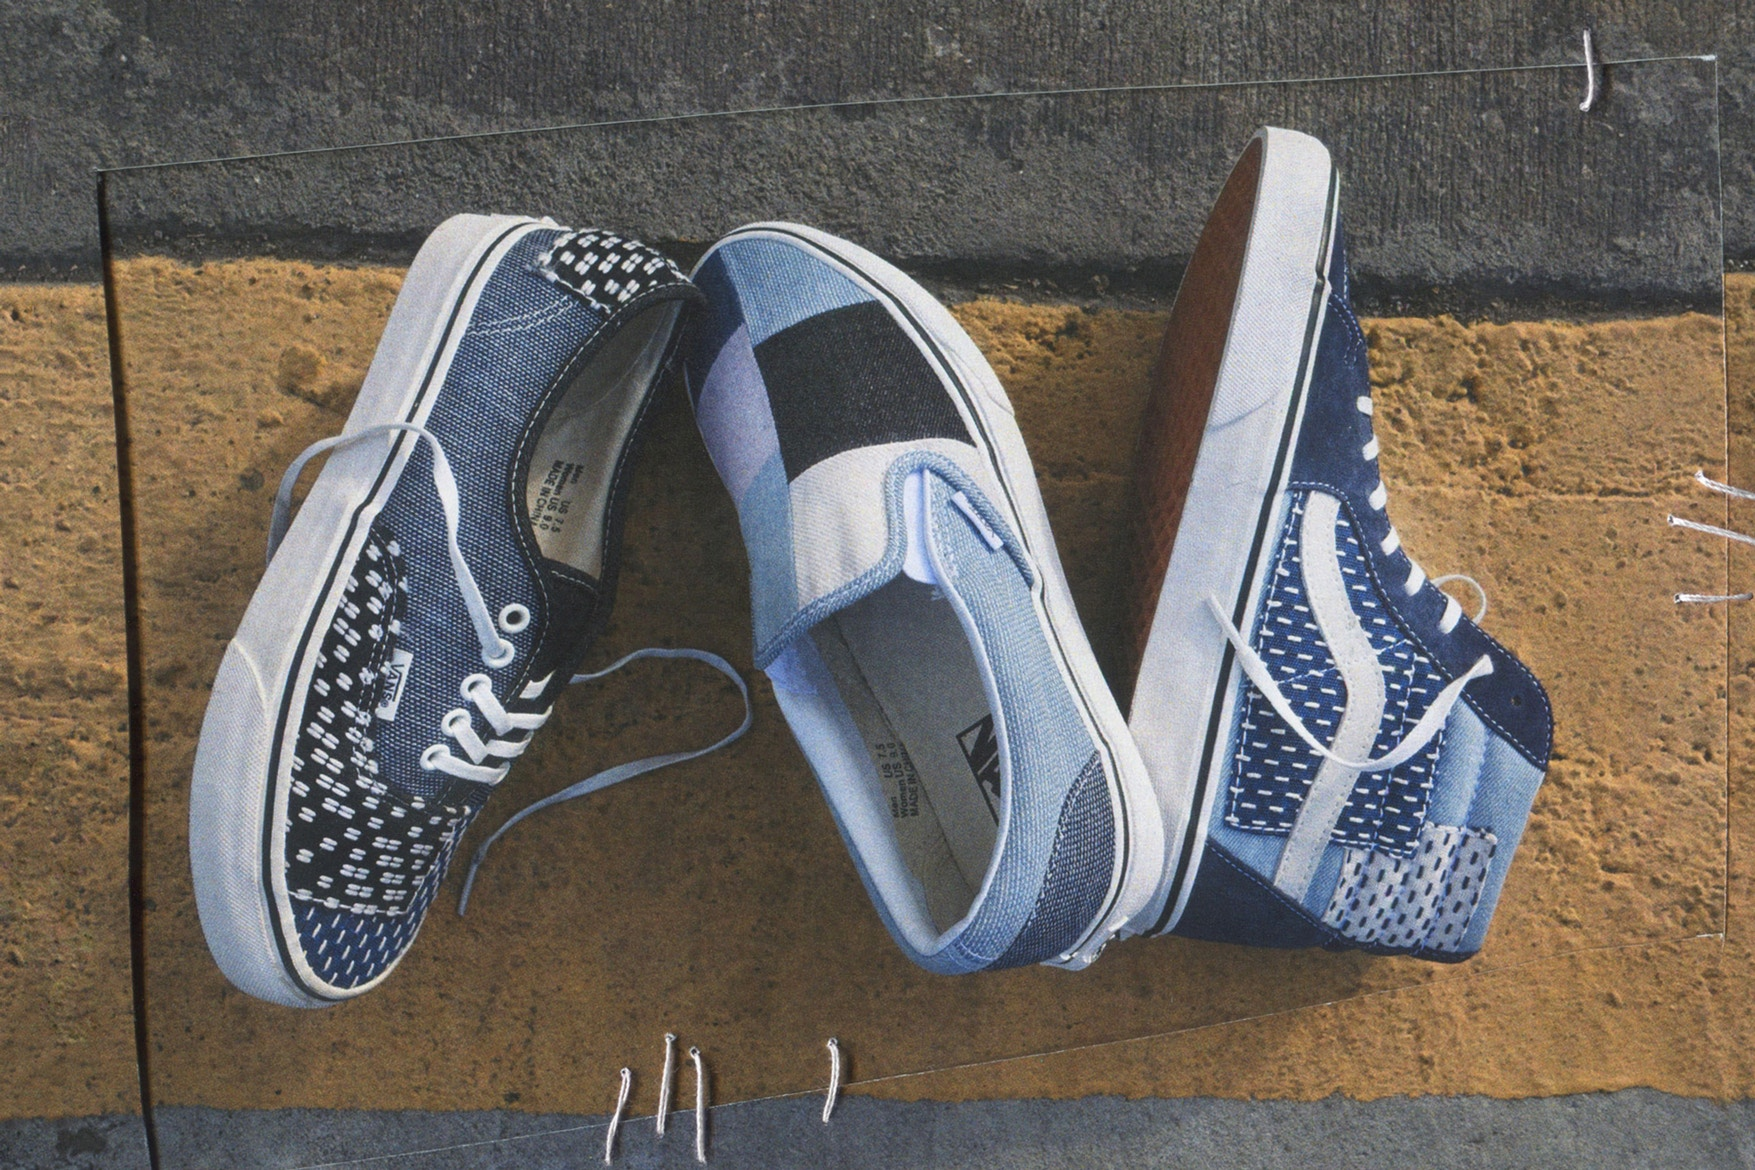 Vans Patchwork Denim Pack